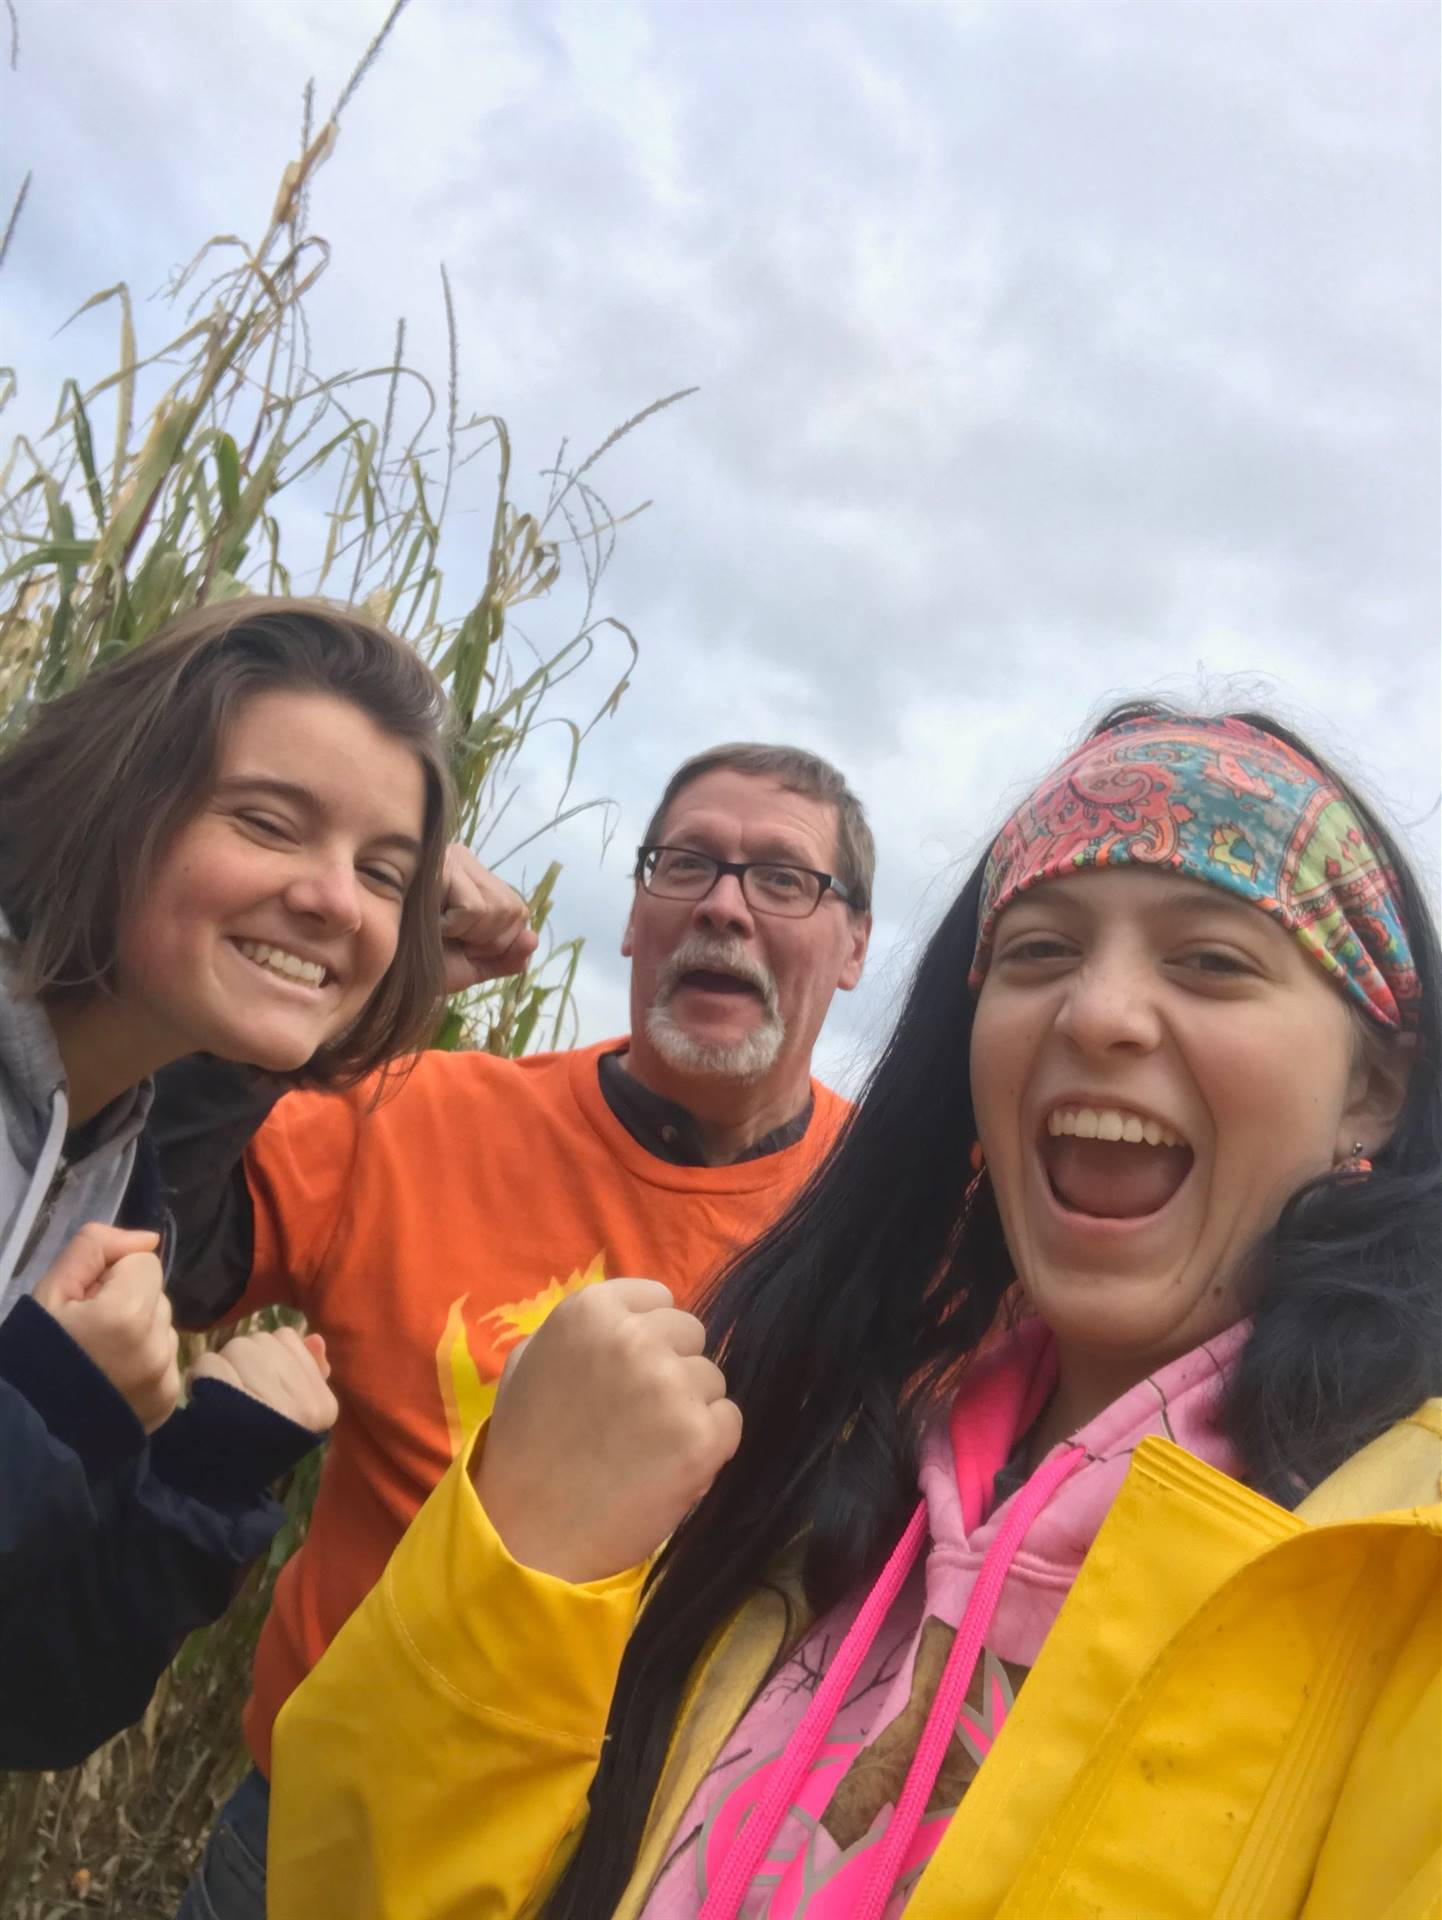 students and adult at corn maze